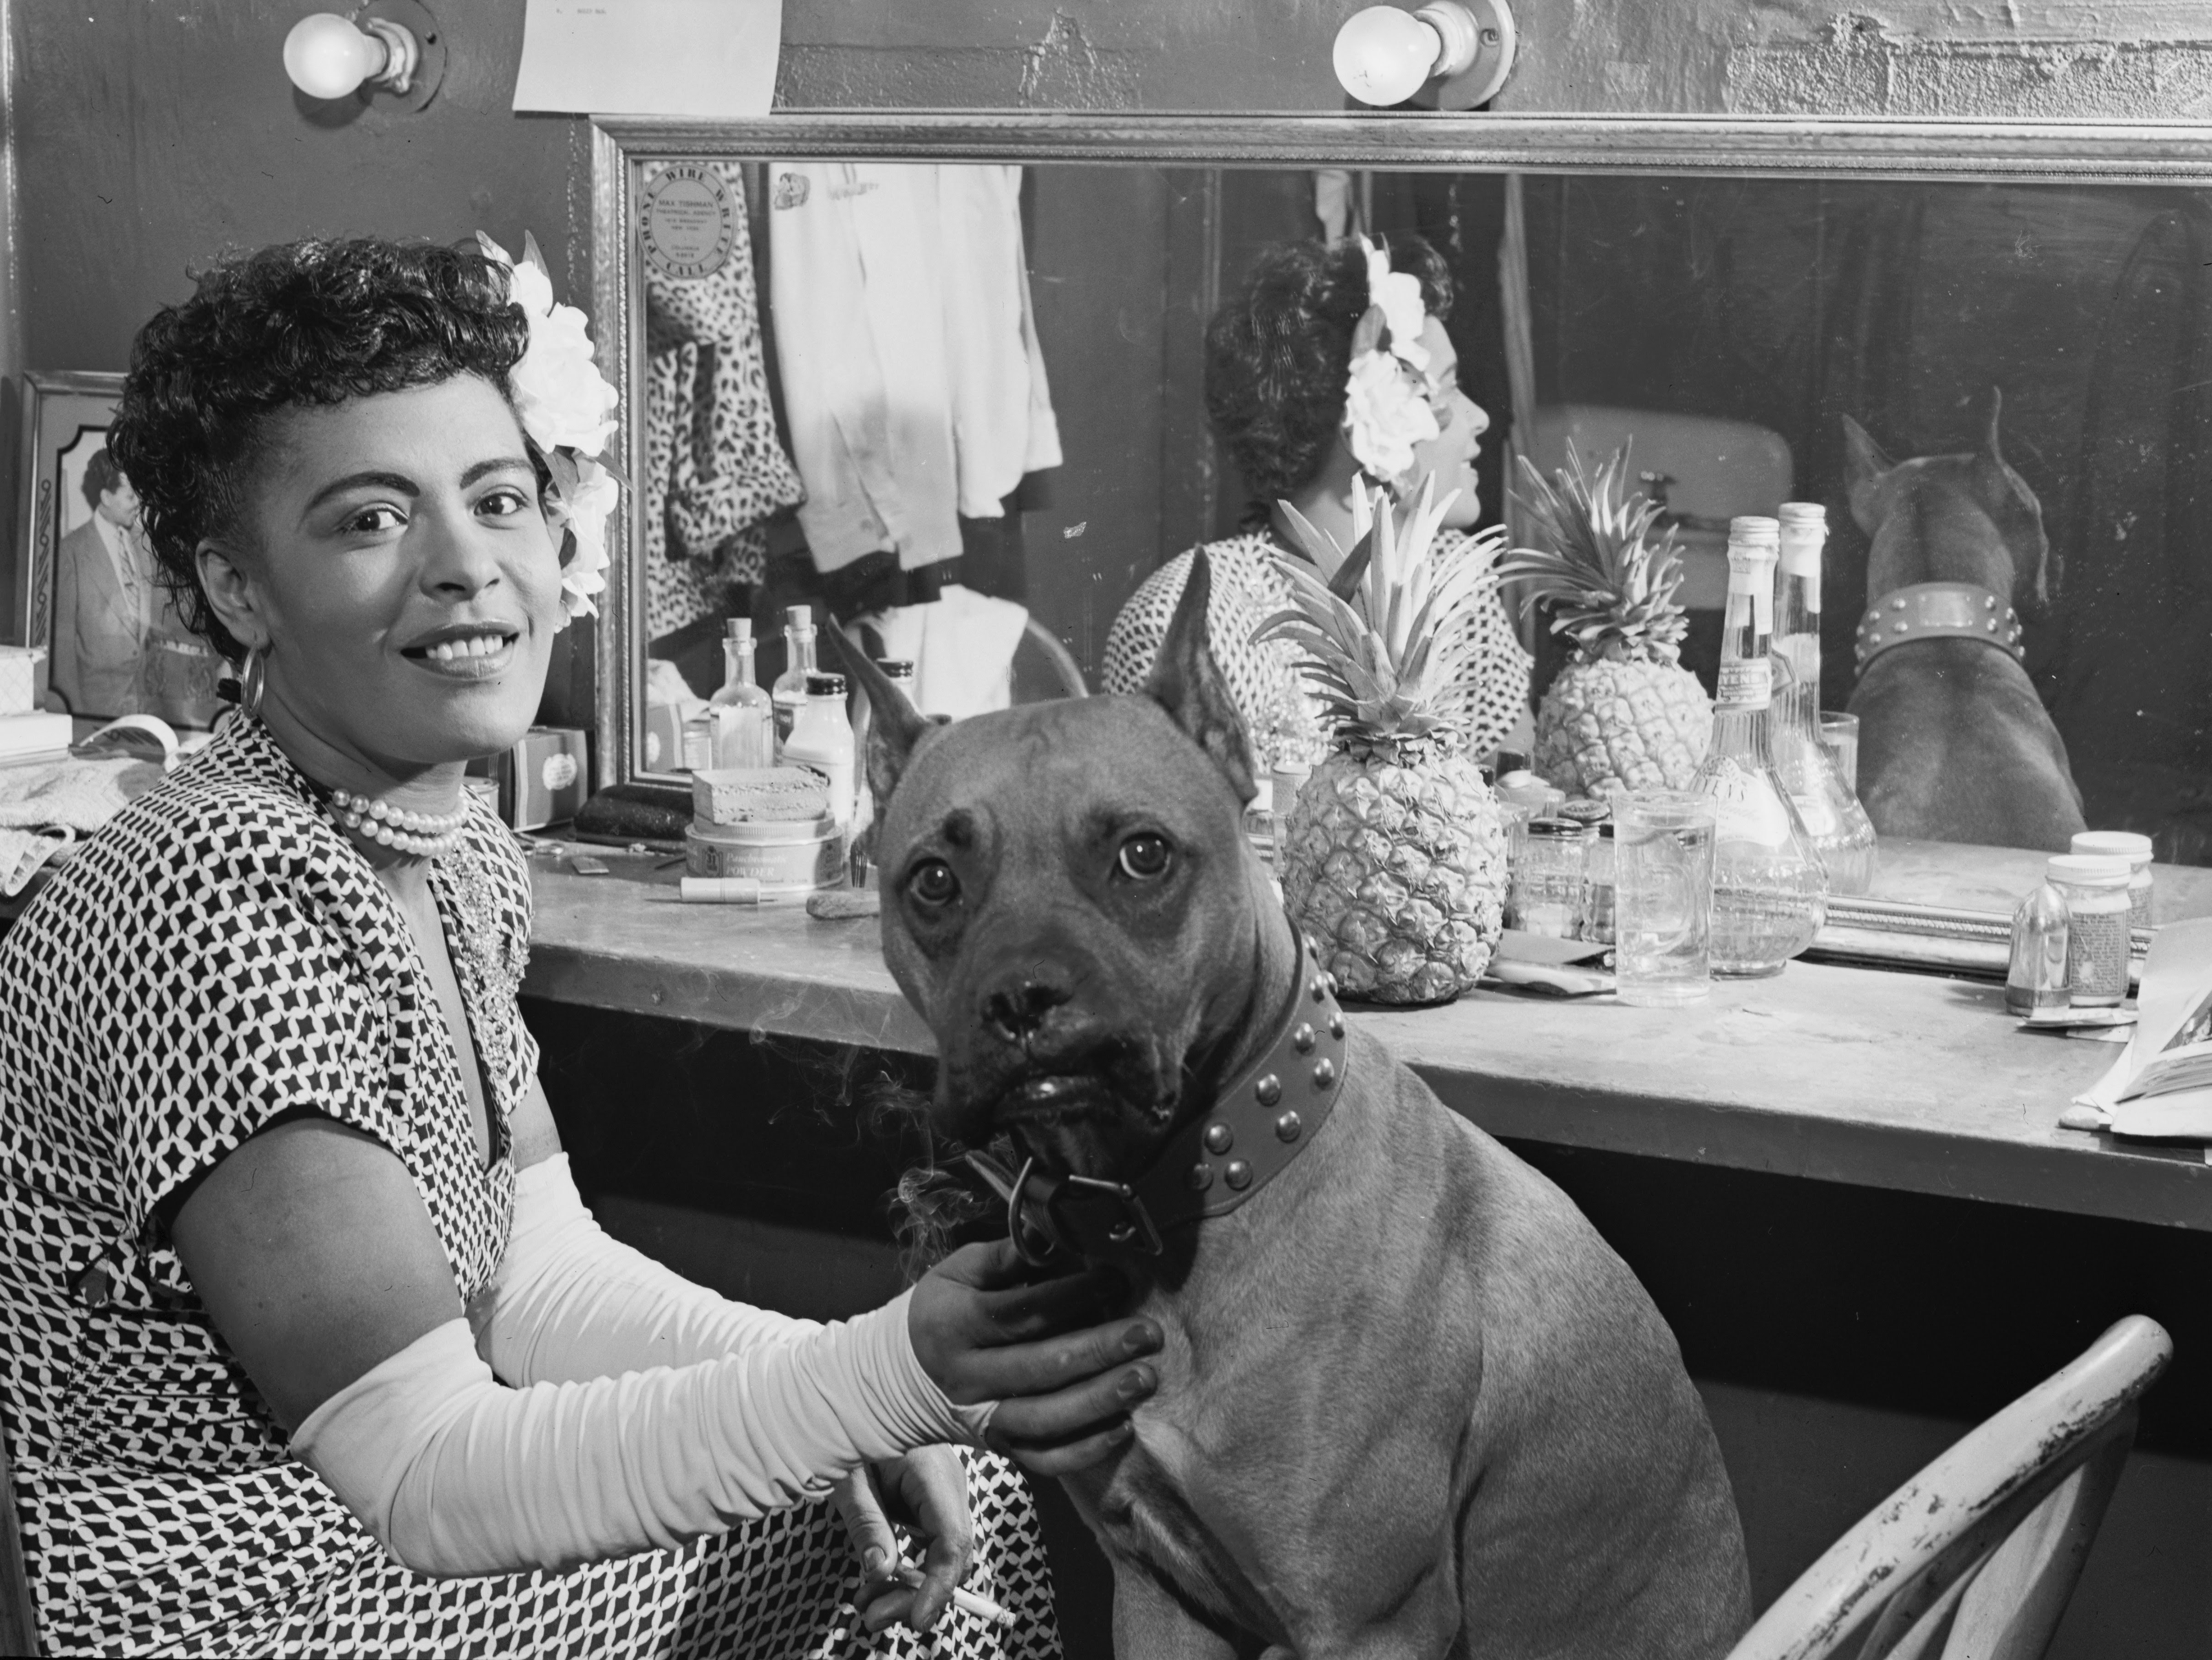 http://upload.wikimedia.org/wikipedia/commons/f/f3/Billie_Holiday_and_Mister%2C_New_York%2C_N.Y.%2C_ca._June_1946_%28William_P._Gottlieb_04271%29.jpg